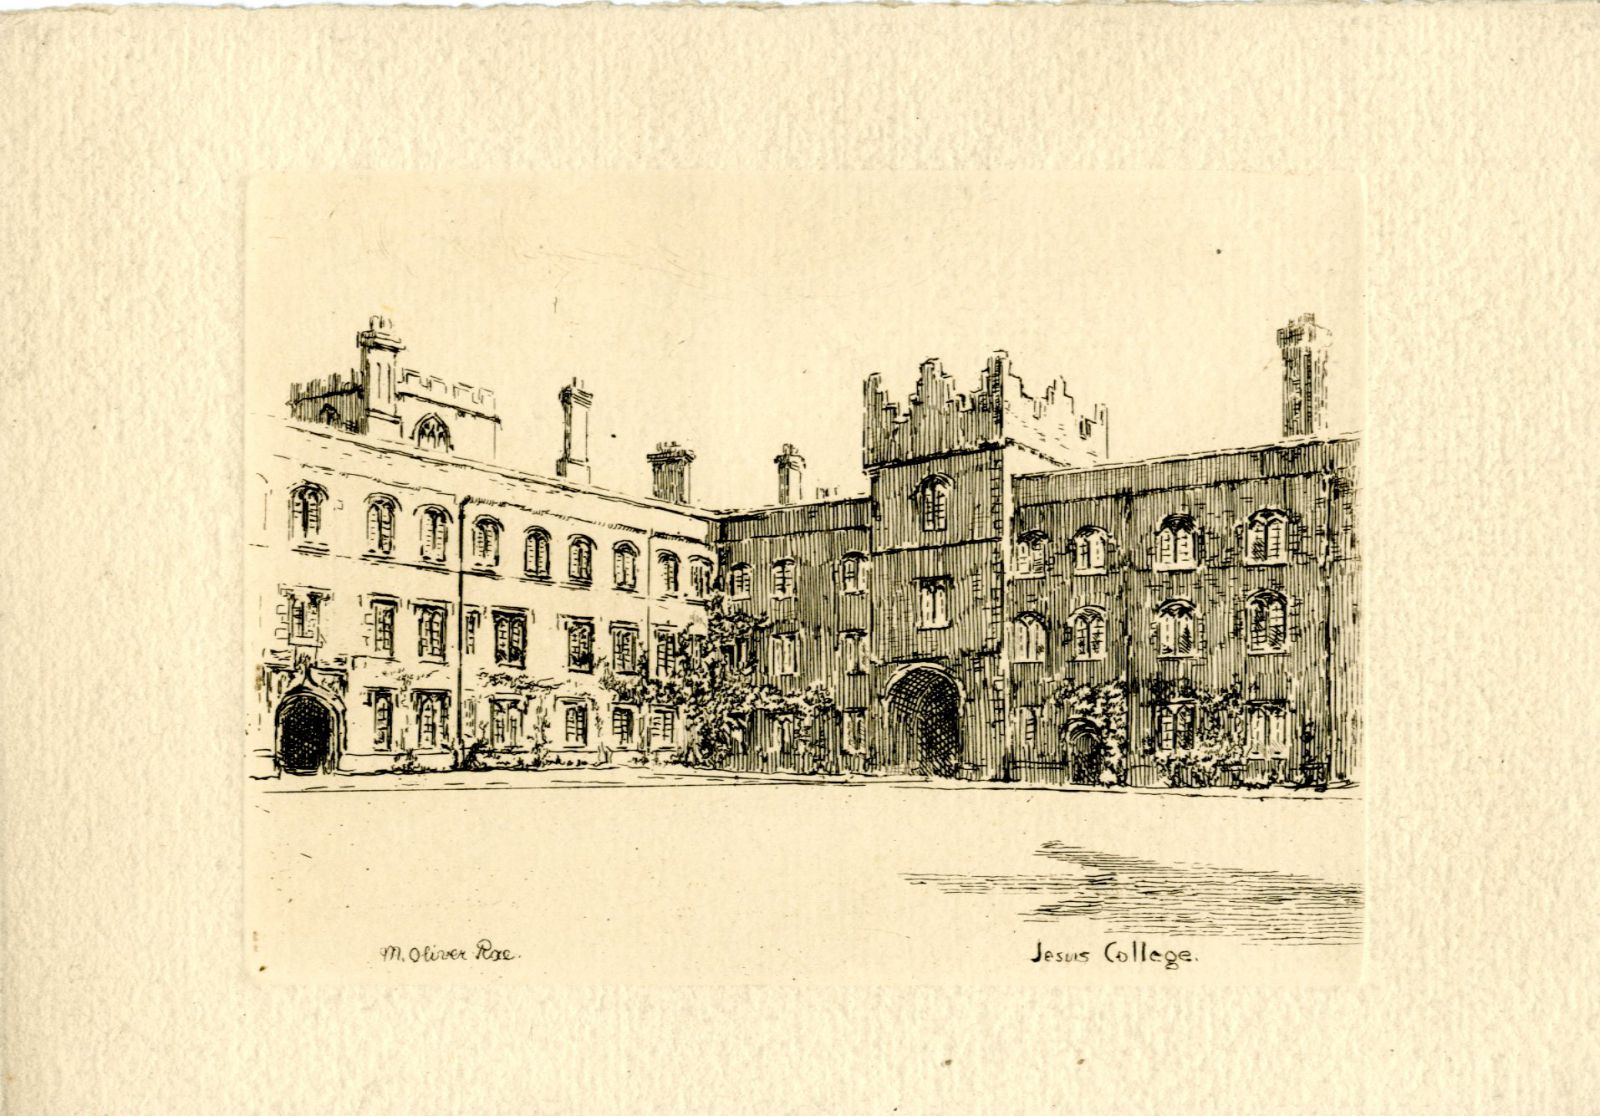 View of First Court by M. Oliver Rae. Mabel Oliver Rae Parker was born in Cambridge at Jesus Lane and, after attending the Slade School of Fine Art, developed a reputation as an accomplished artist. Part of her oeuvre included depictions of Oxbridge Colleges, including this one of Jesus College (no doubt a familiar location considering her birthplace) used for a Christmas card of about 1900.